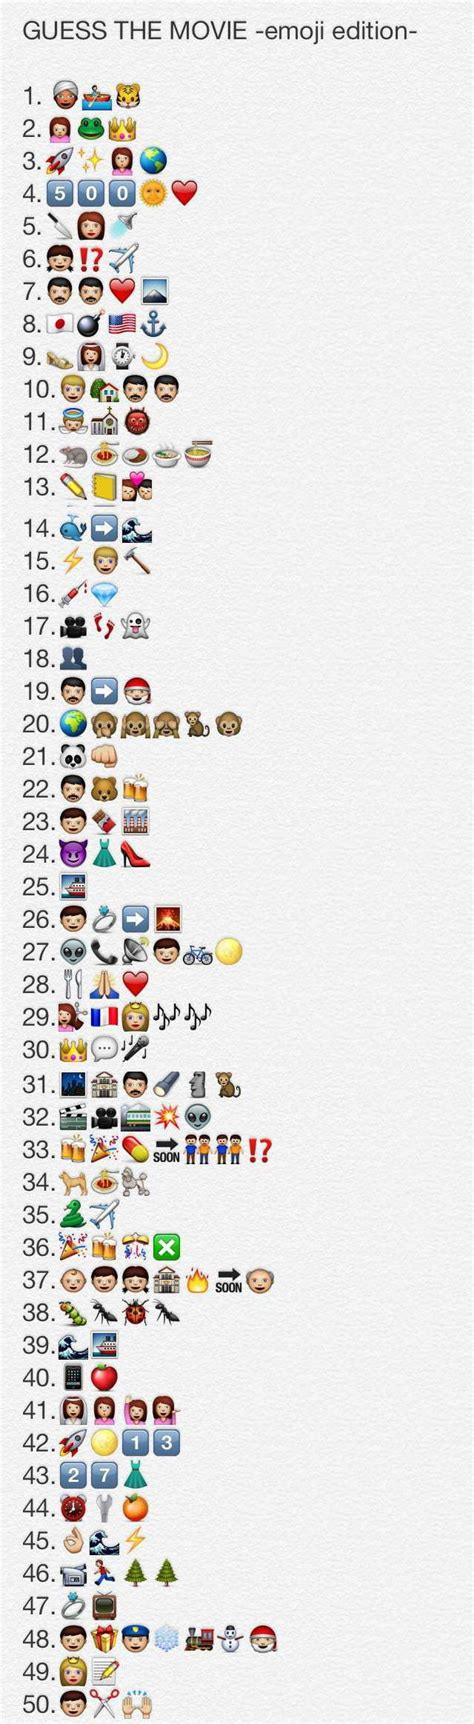 Film Brief Junge Emoji Quiz | 25 best ideas about guess the emoji on pinterest the